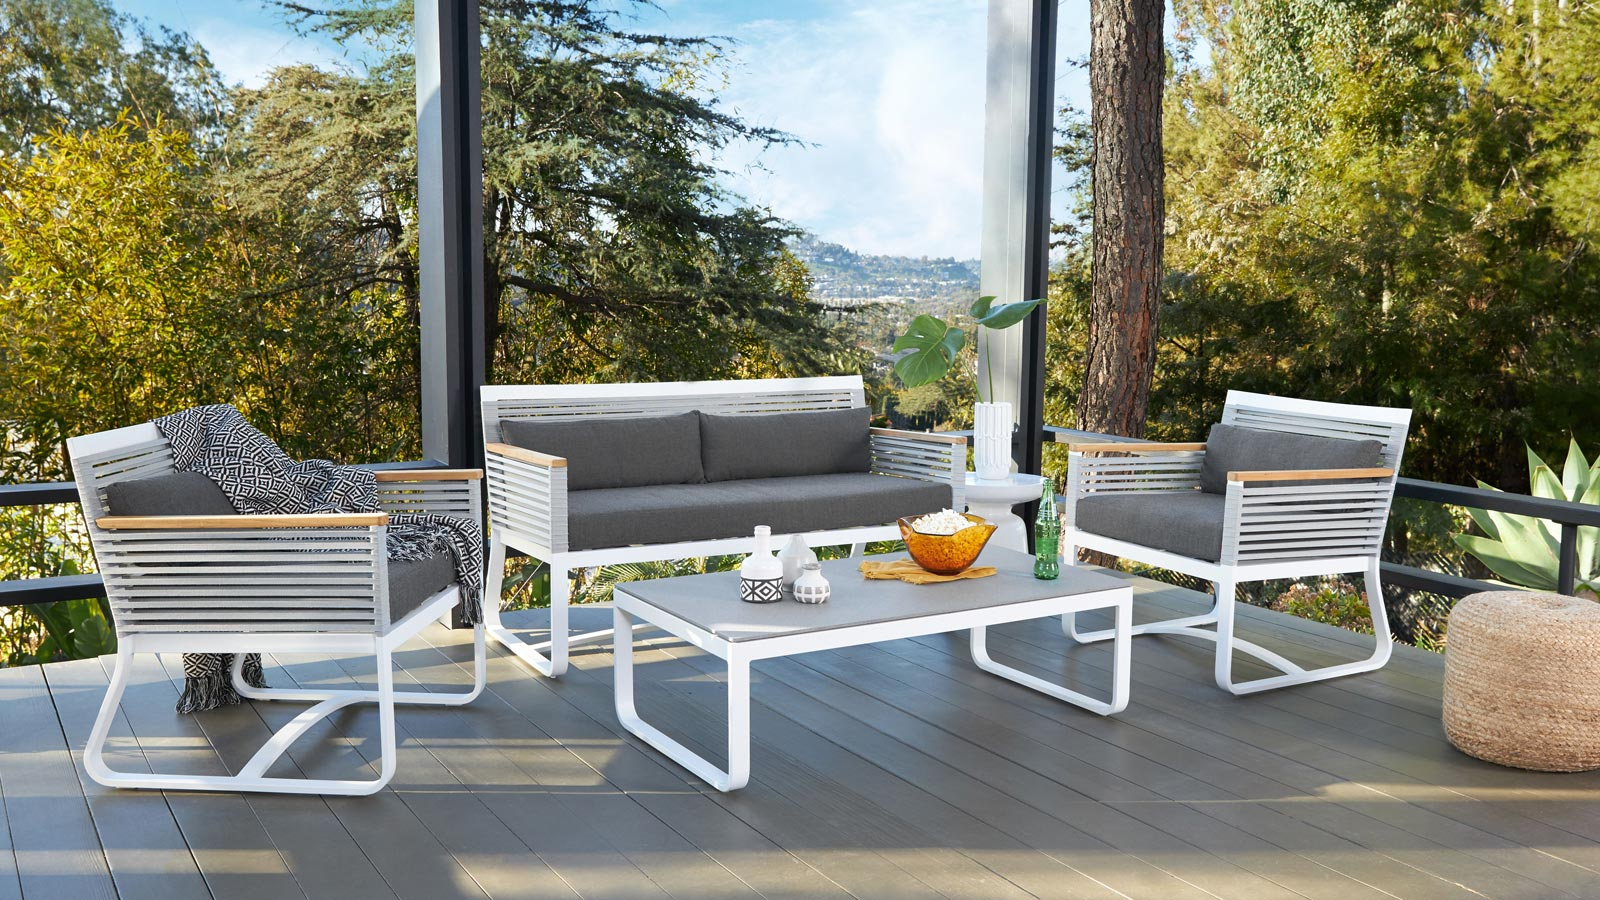 Bring the joy outside view outdoor furniture